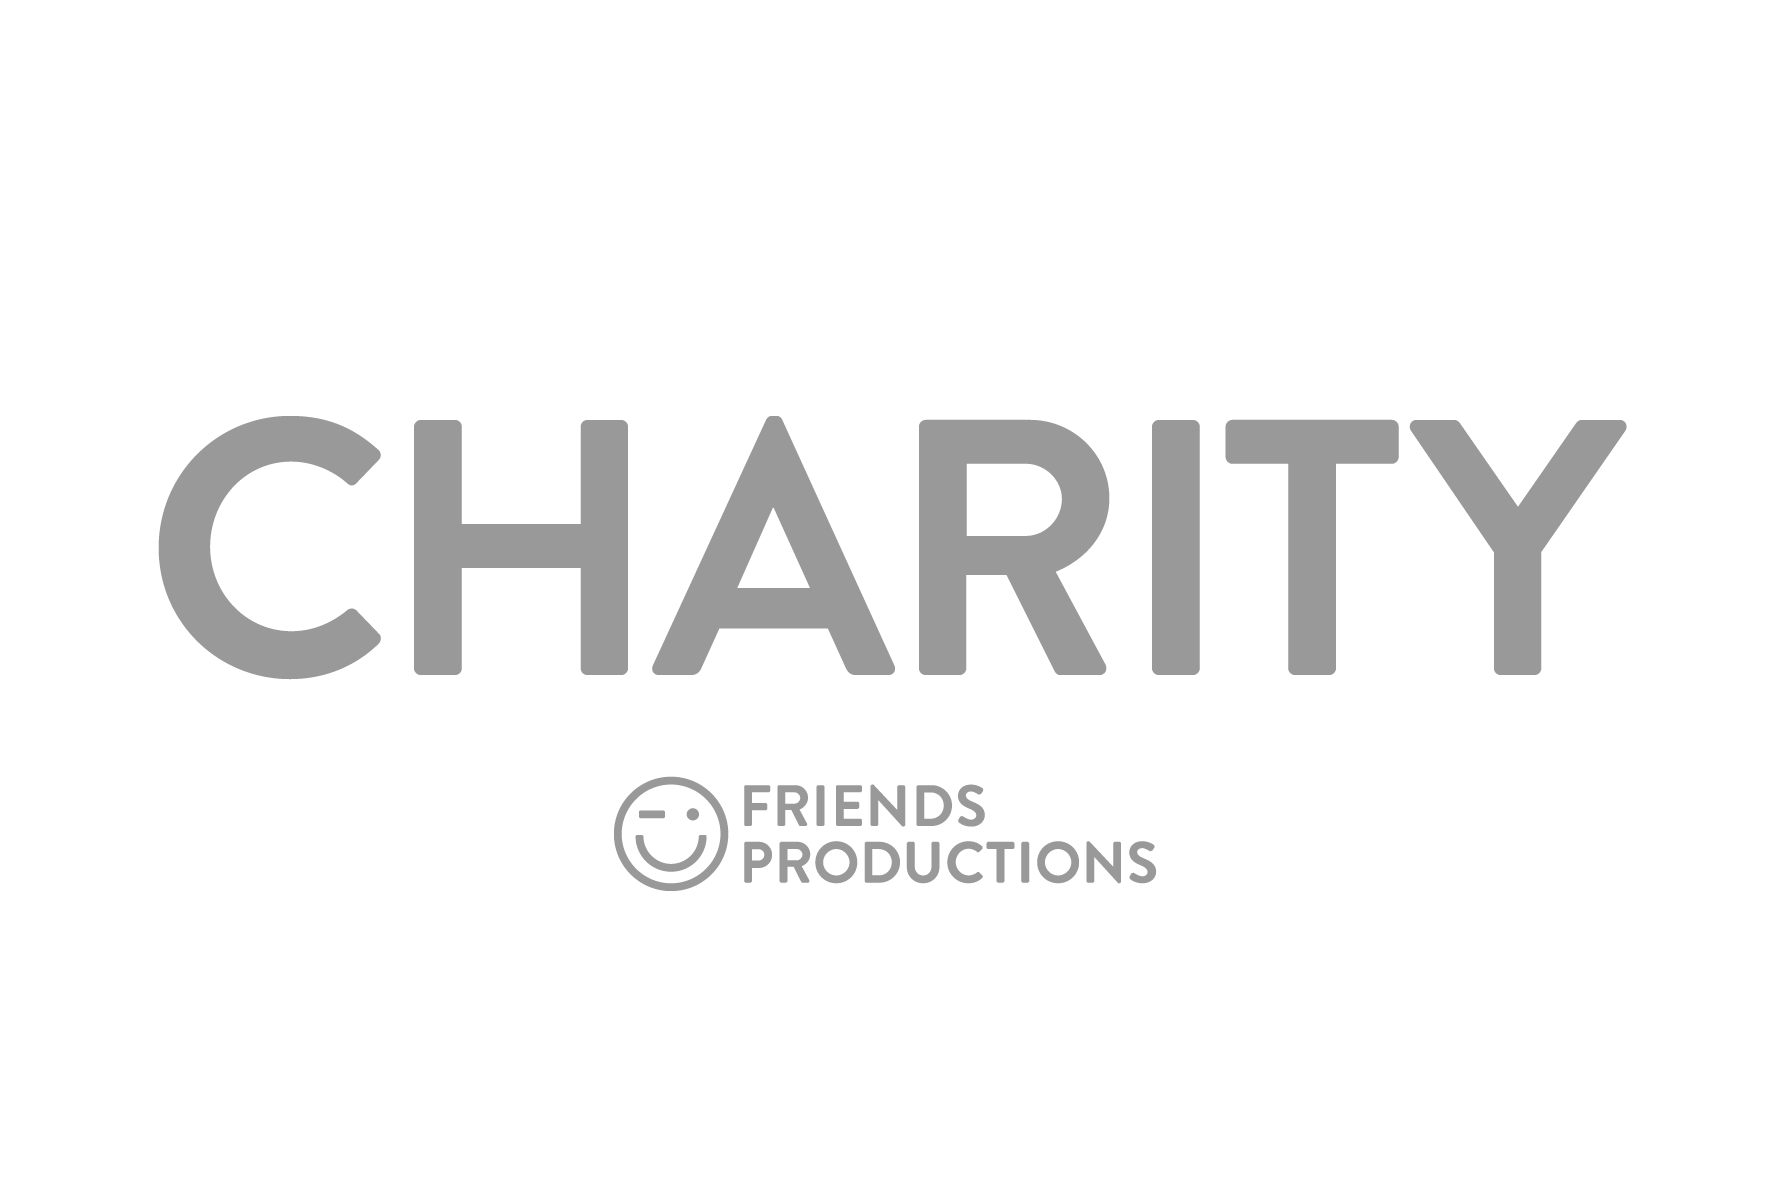 Friends Productions Charity